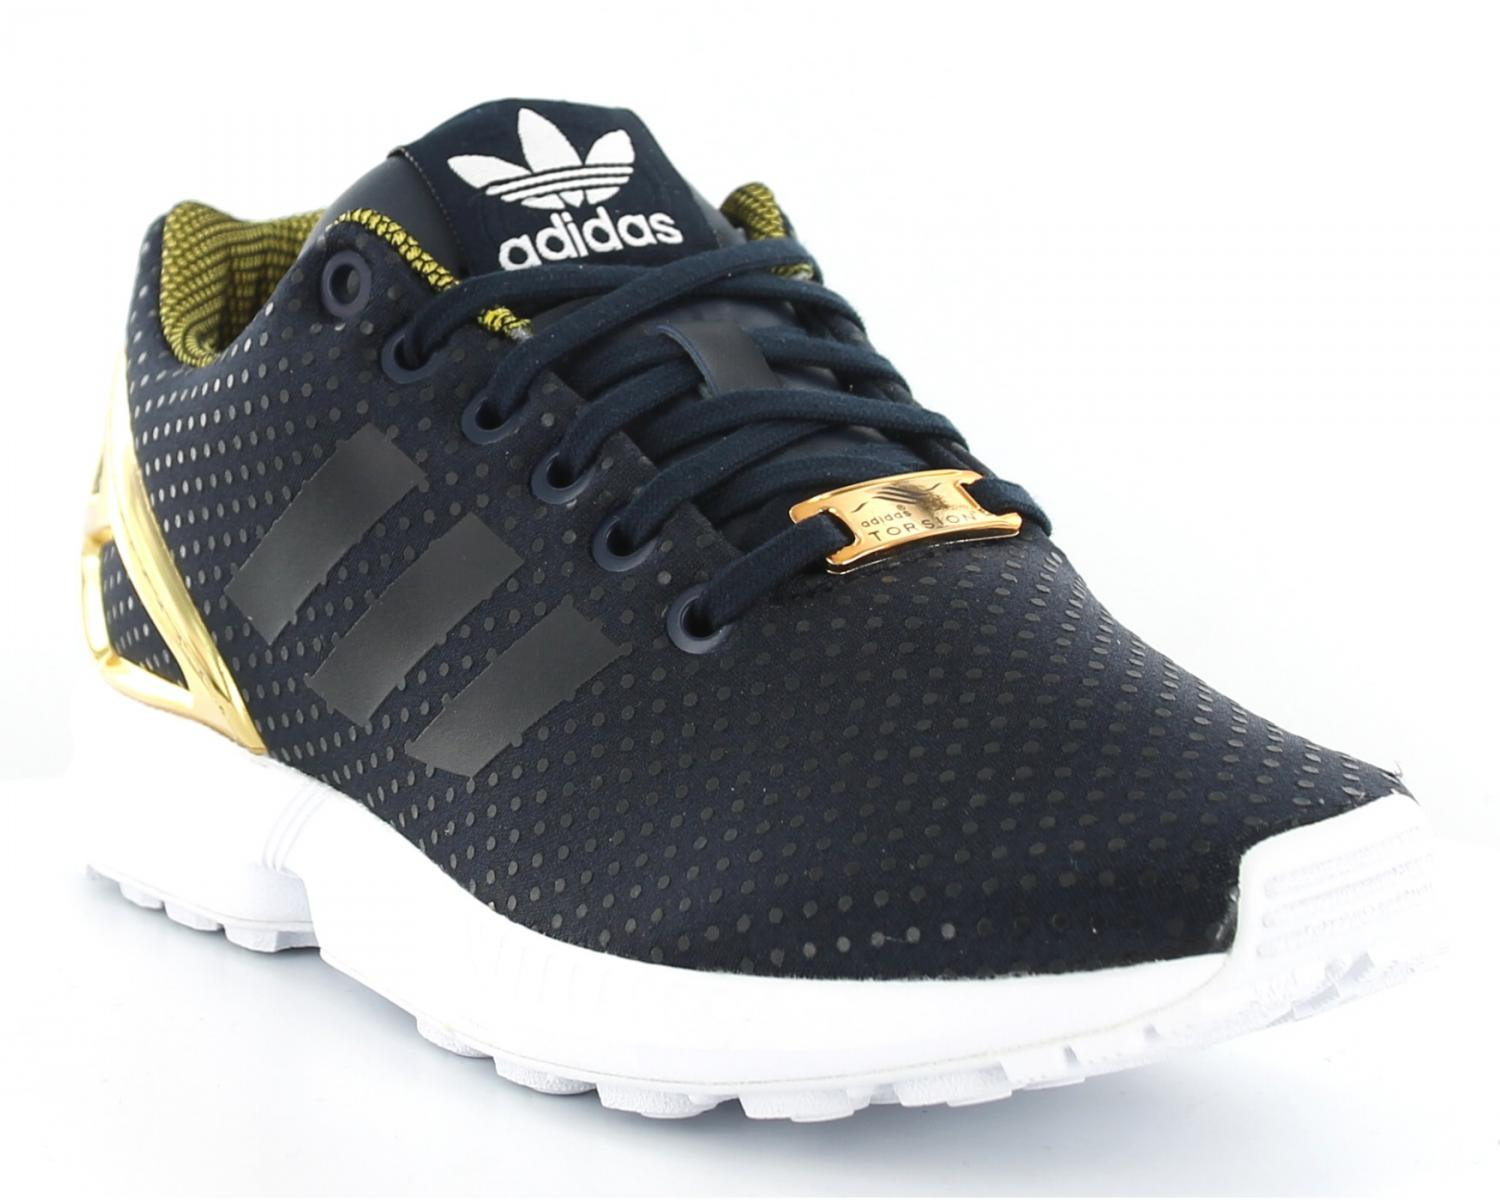 adidas zx flux femme or Off 61% - www.bashhguidelines.org